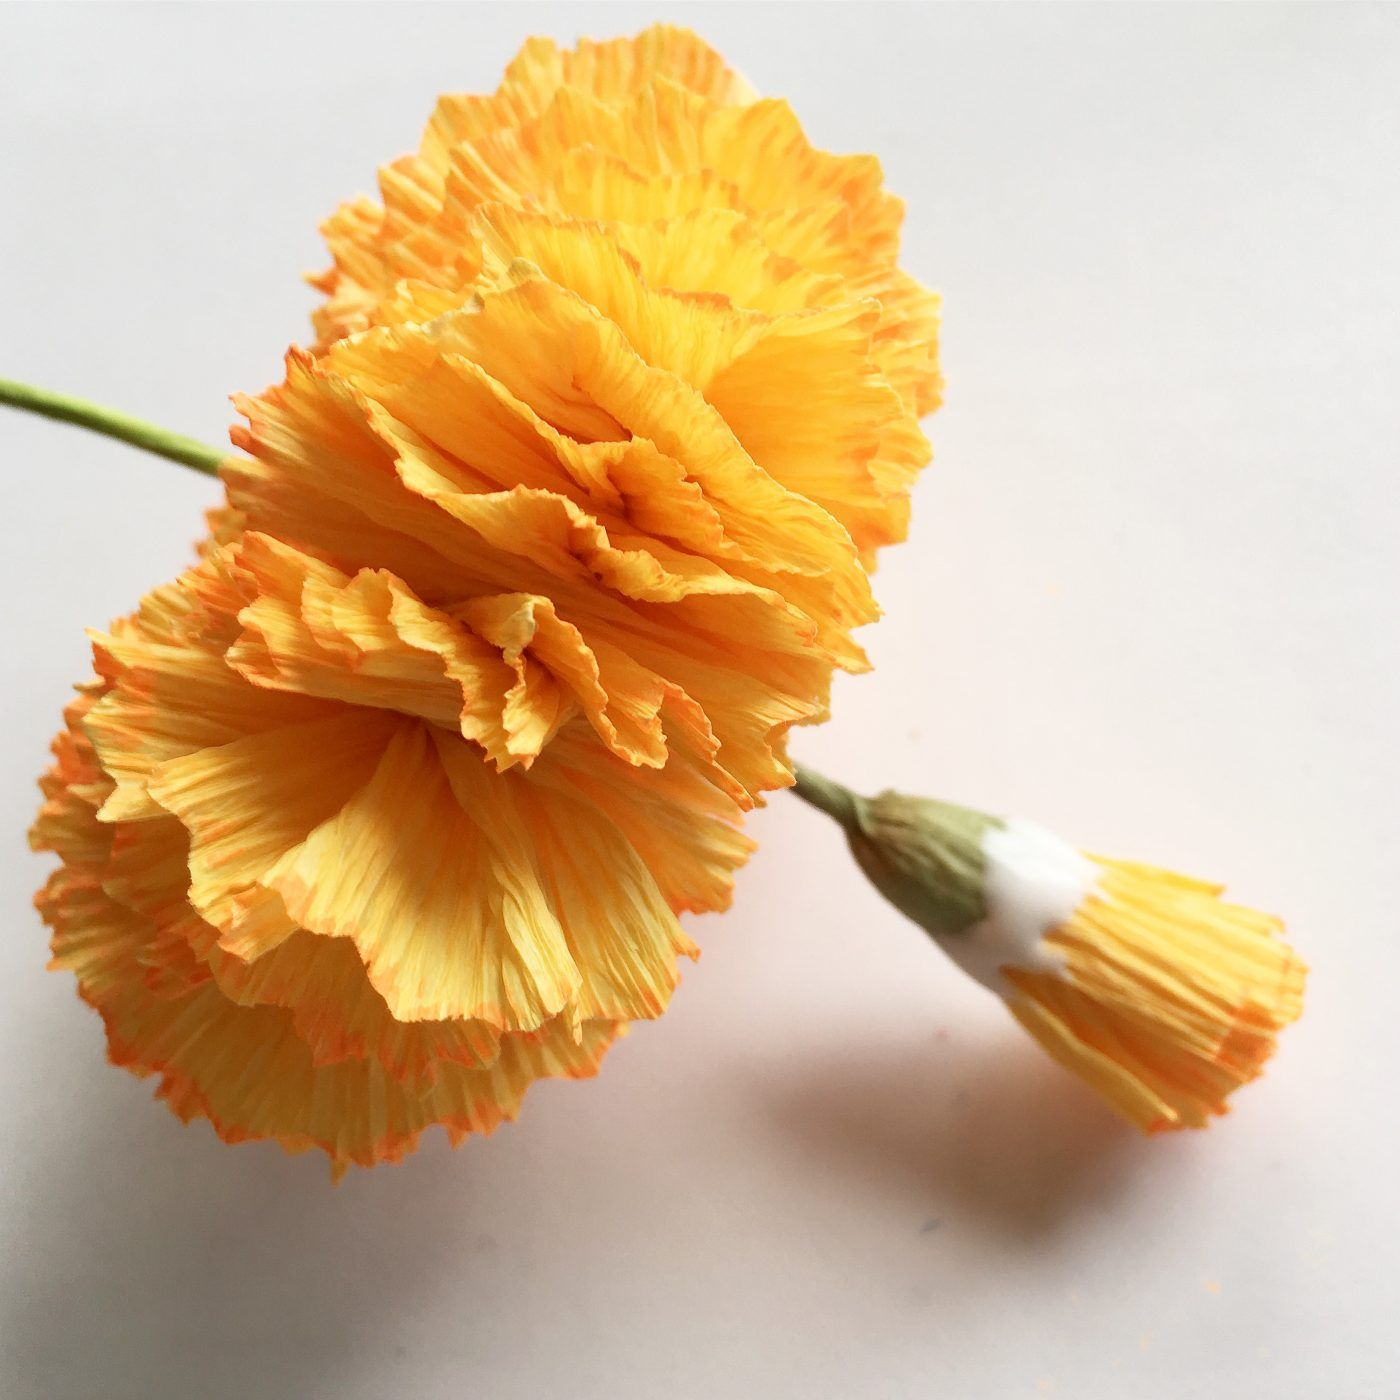 How To Make Marigold Paper Flower Crepe Paper Flowers Tutorial